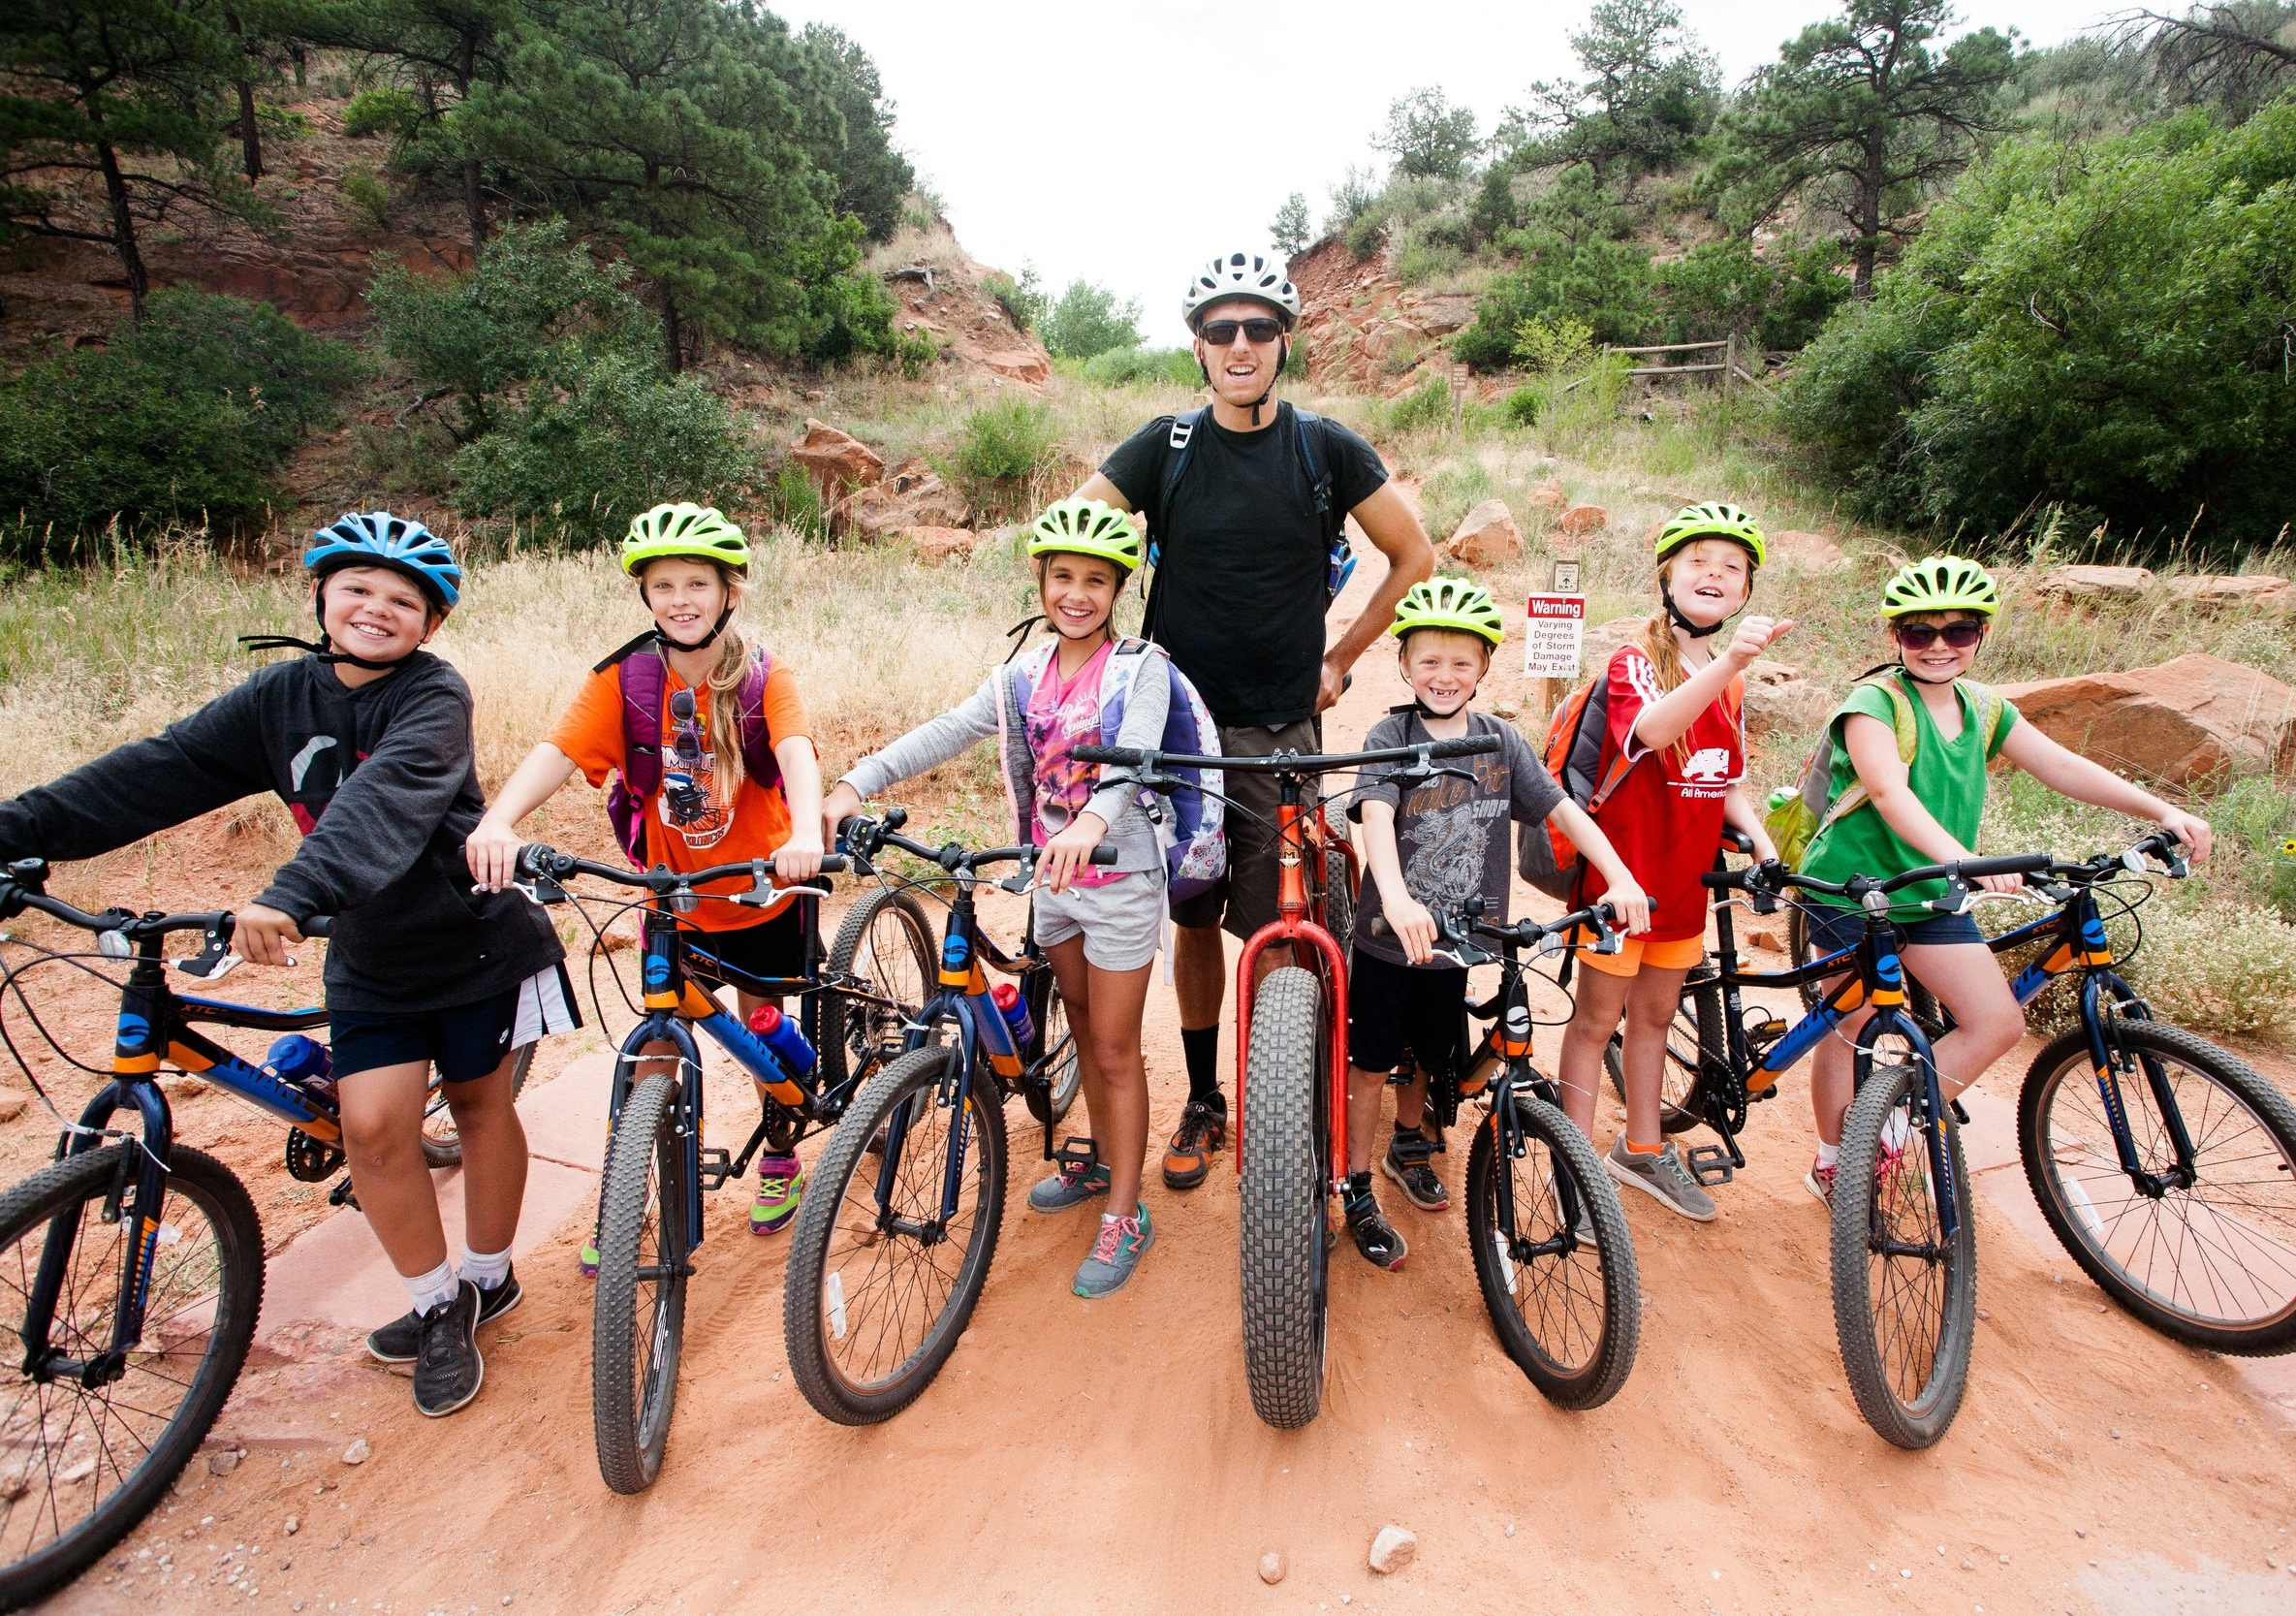 Go West Camps uses biking in its summer day camps and teen leadership programs to promote healthy living, community awareness and skill building.